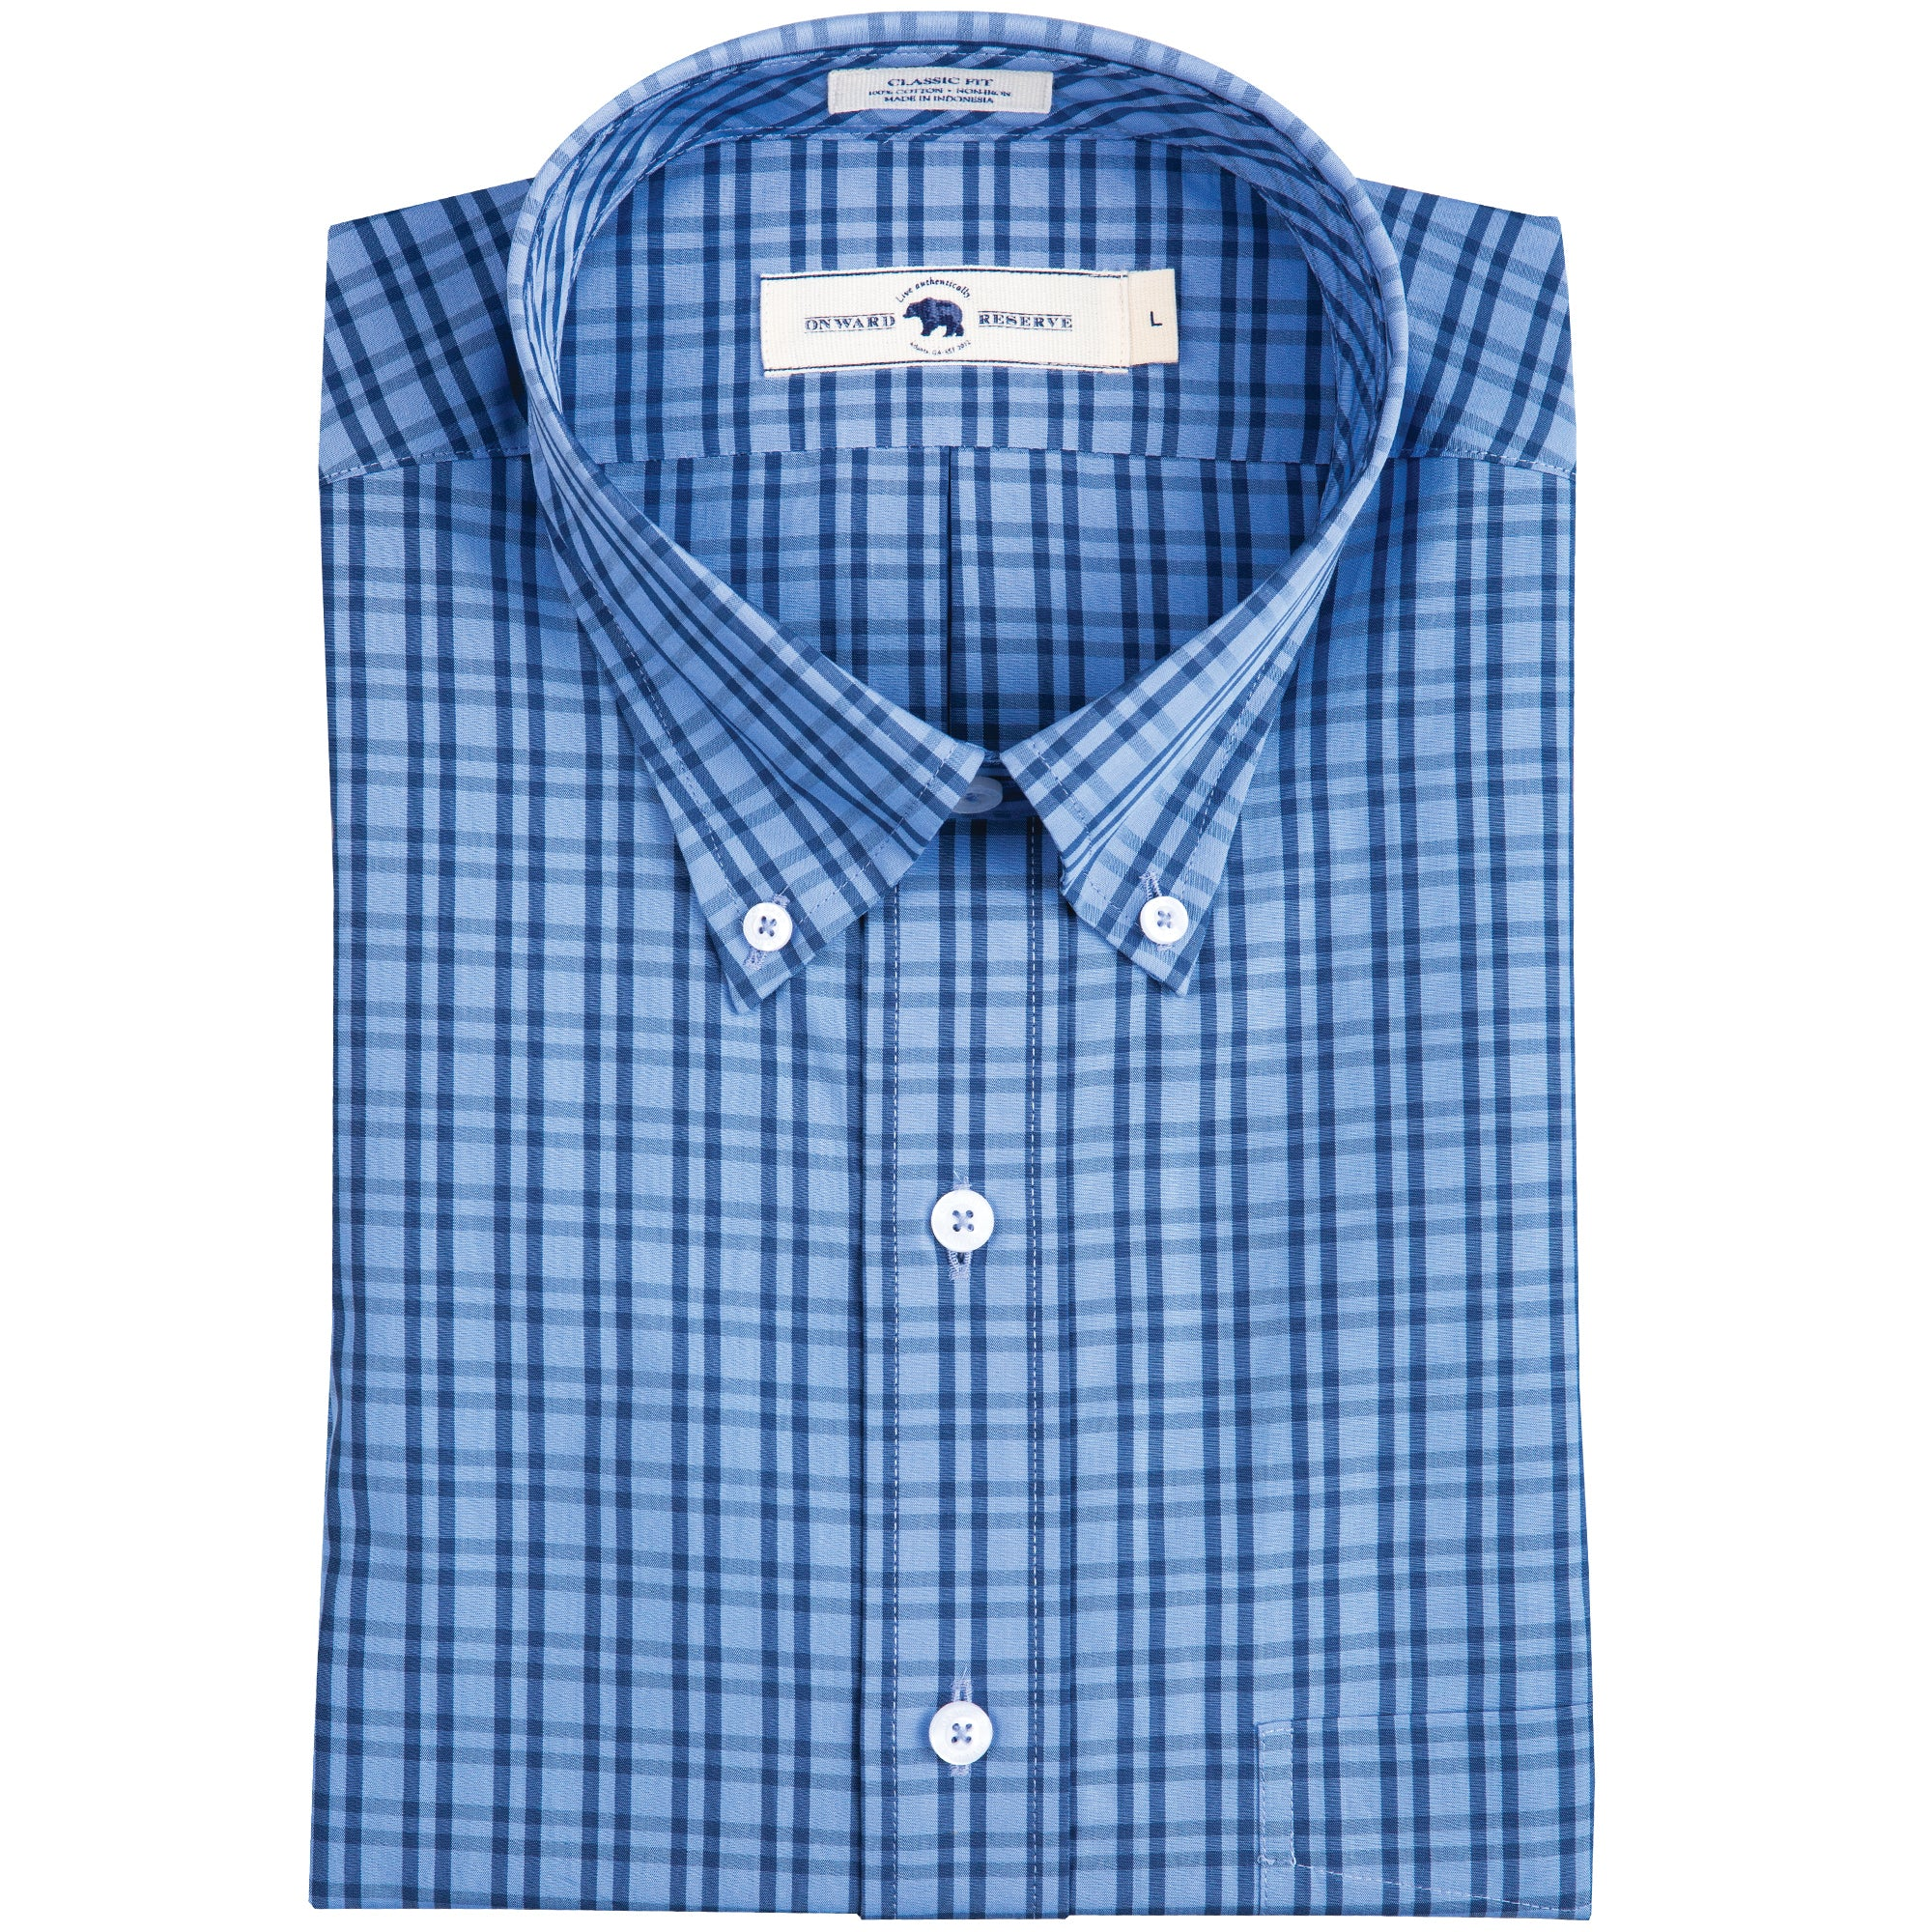 Sapelo Classic Fit Button Down